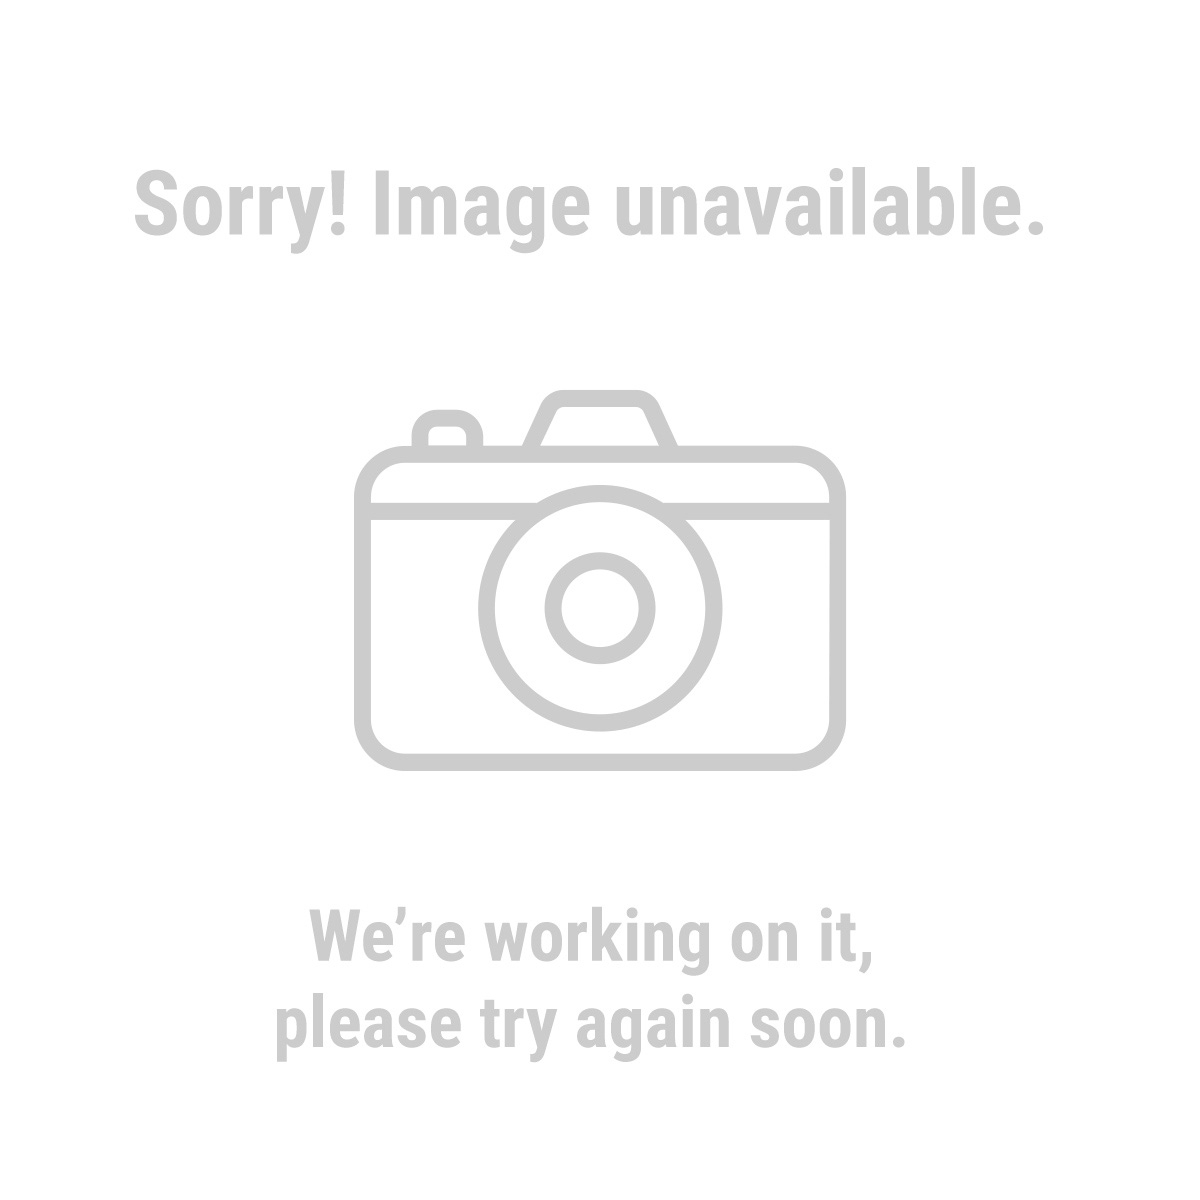 "Haul Master Shop 66537 72"" x 80"" Mover's Blanket"